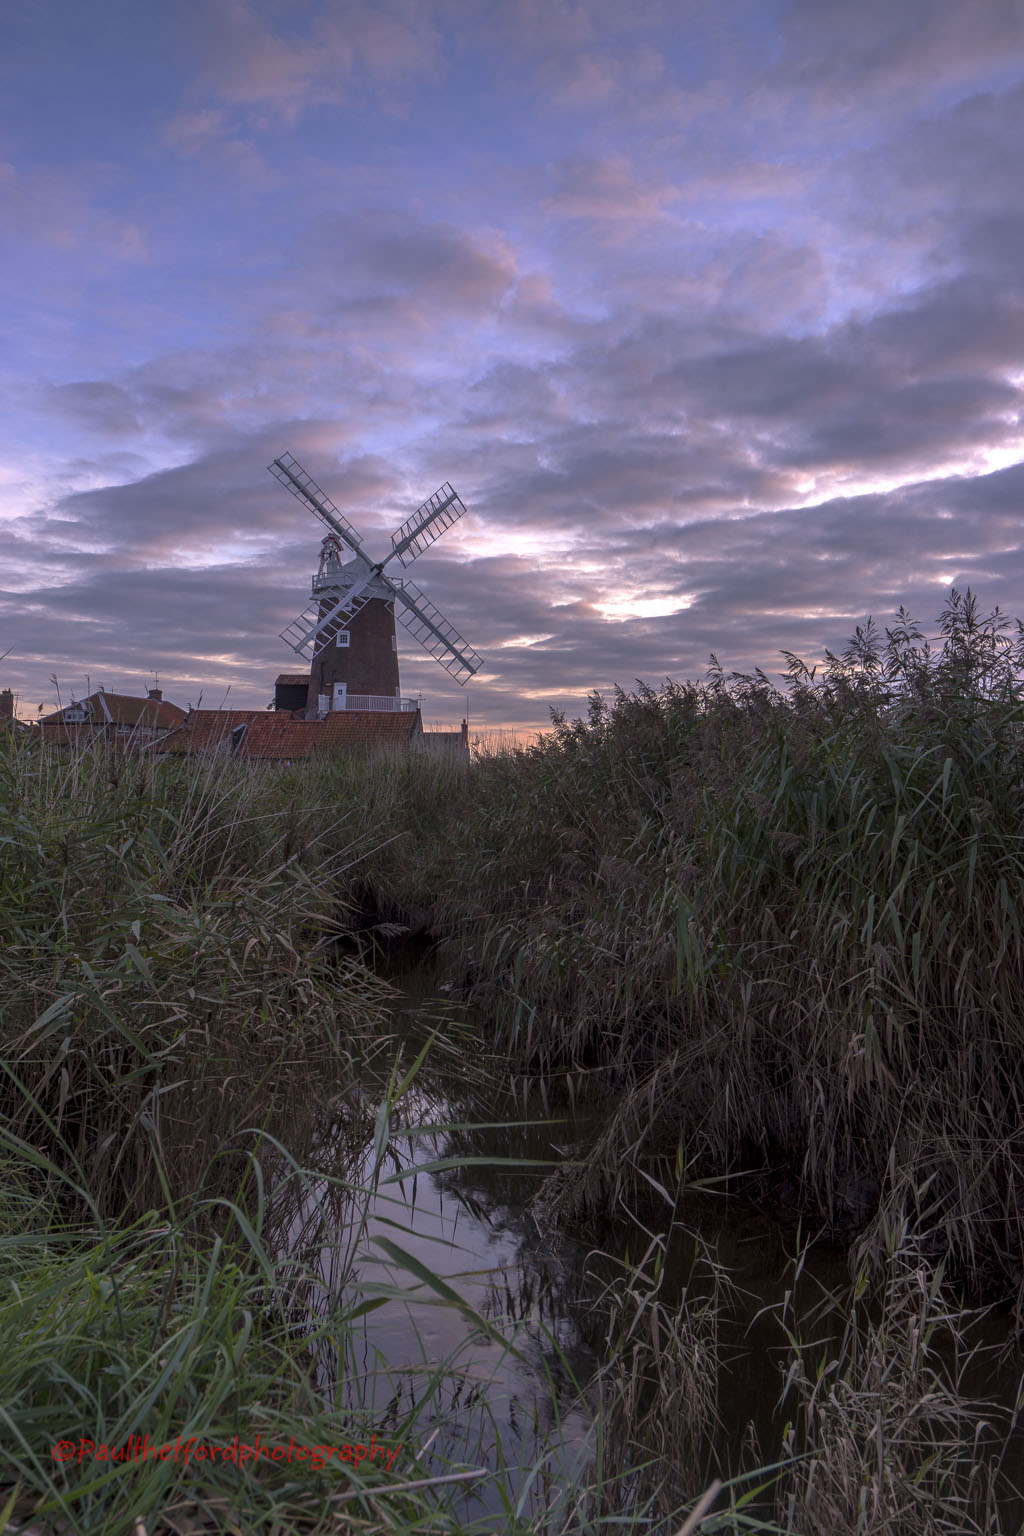 Evening Skies over Cley Mill